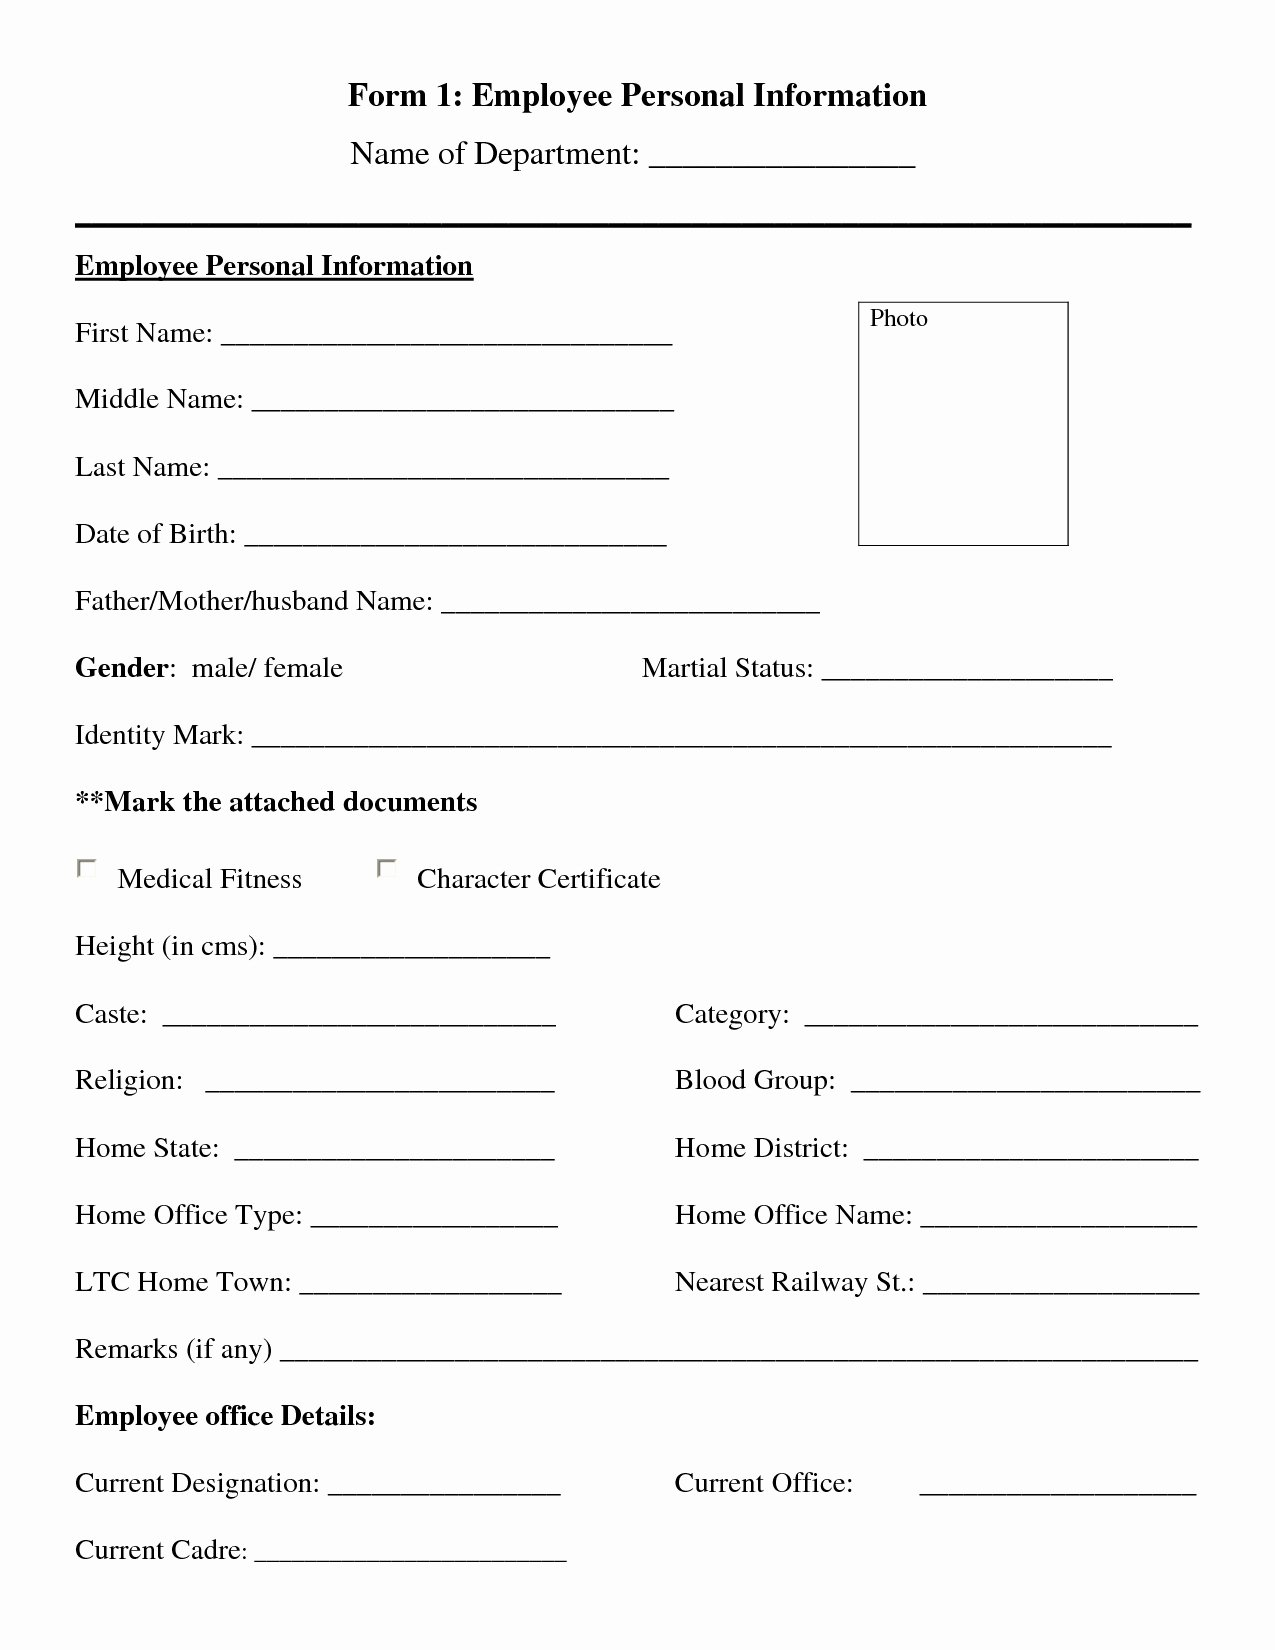 Personal Information form Template Best Of Personal Information Template Portablegasgrillweber